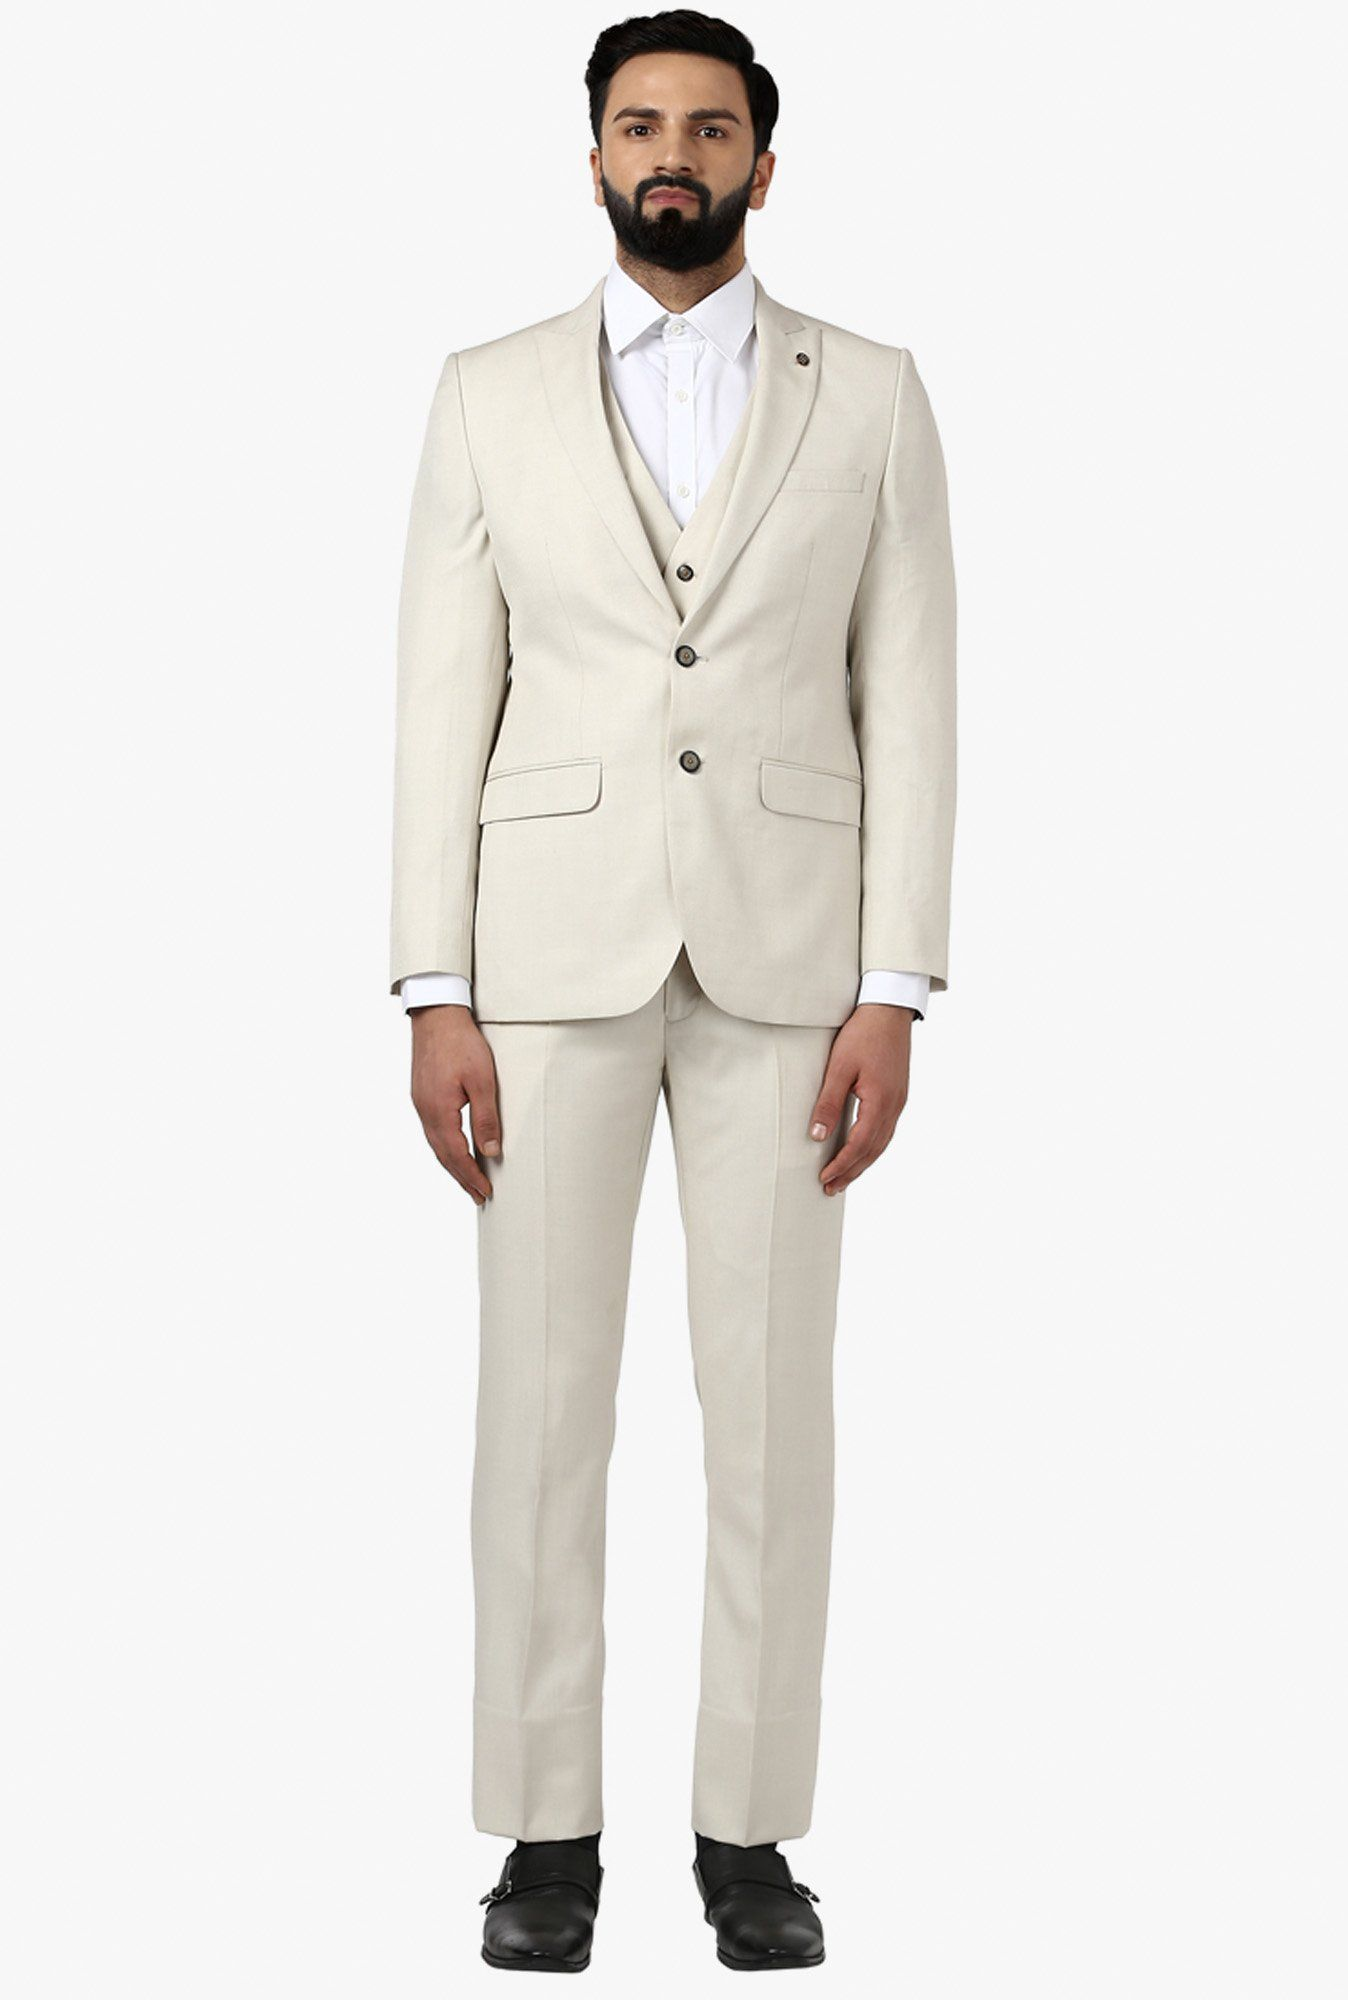 8dc331ea552 Raymond Beige Full Sleeves Notched Lapel Suit